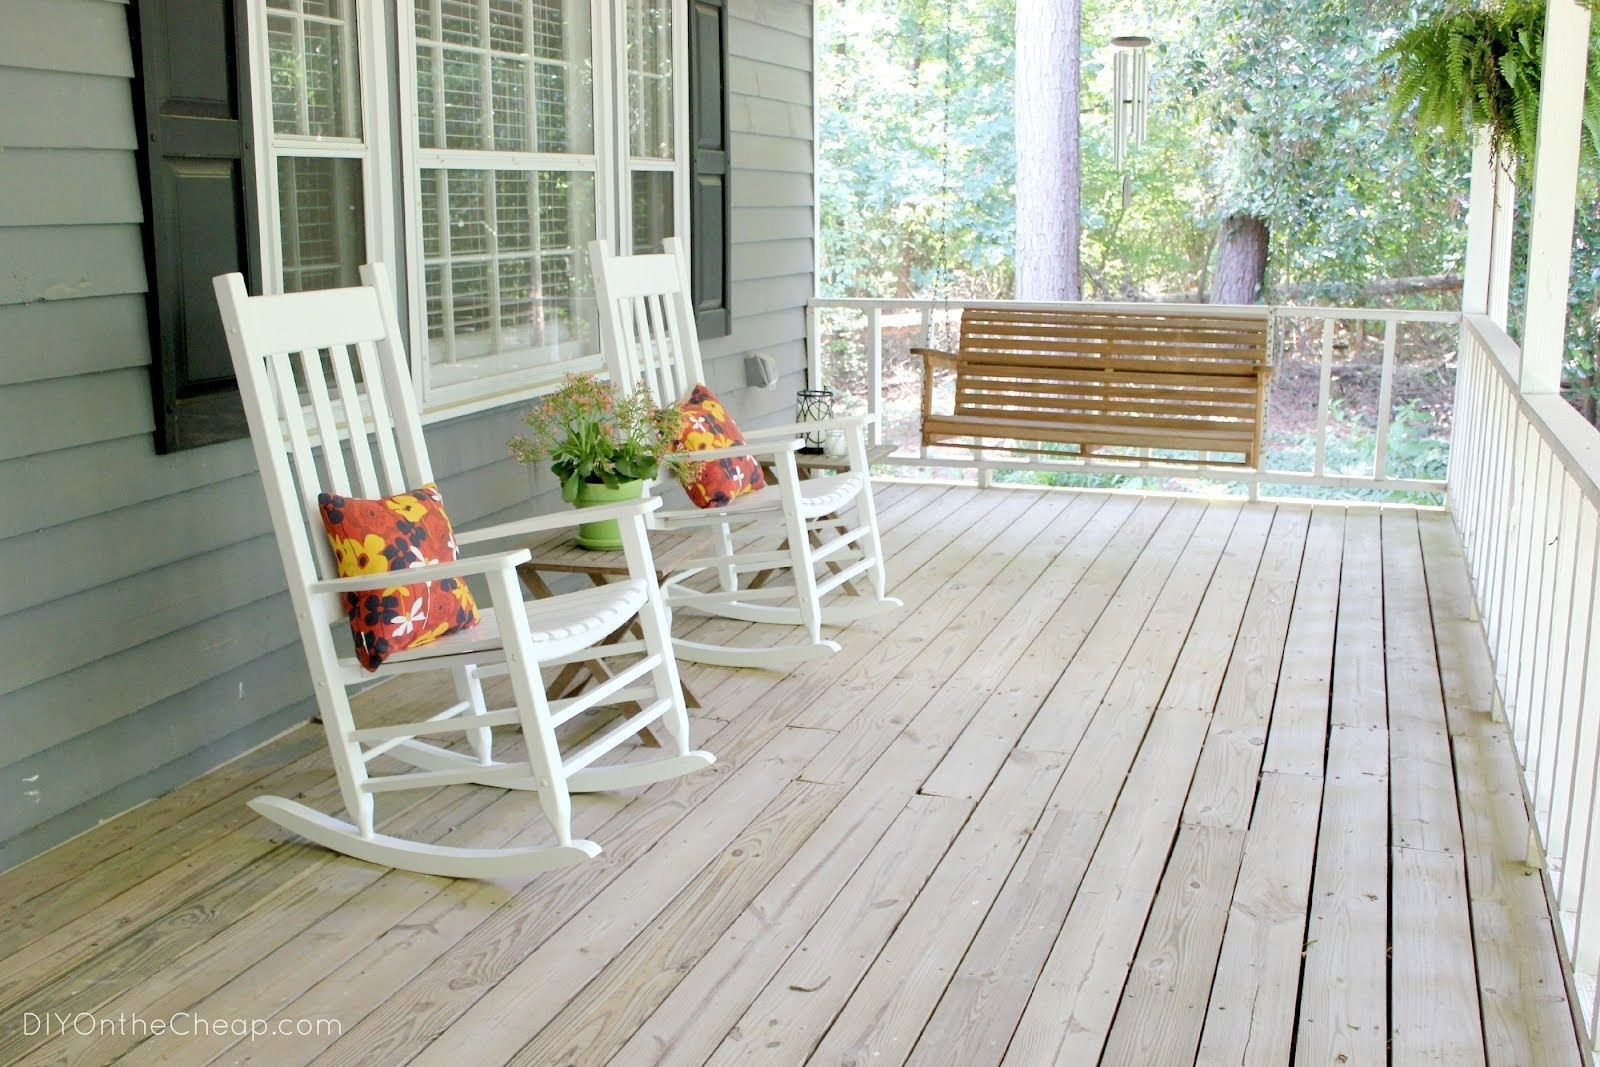 Furniture : Southern Style Rocking Chairs Wicker And Wood Rocking Within Well Known Rocking Chairs For Front Porch (View 9 of 20)